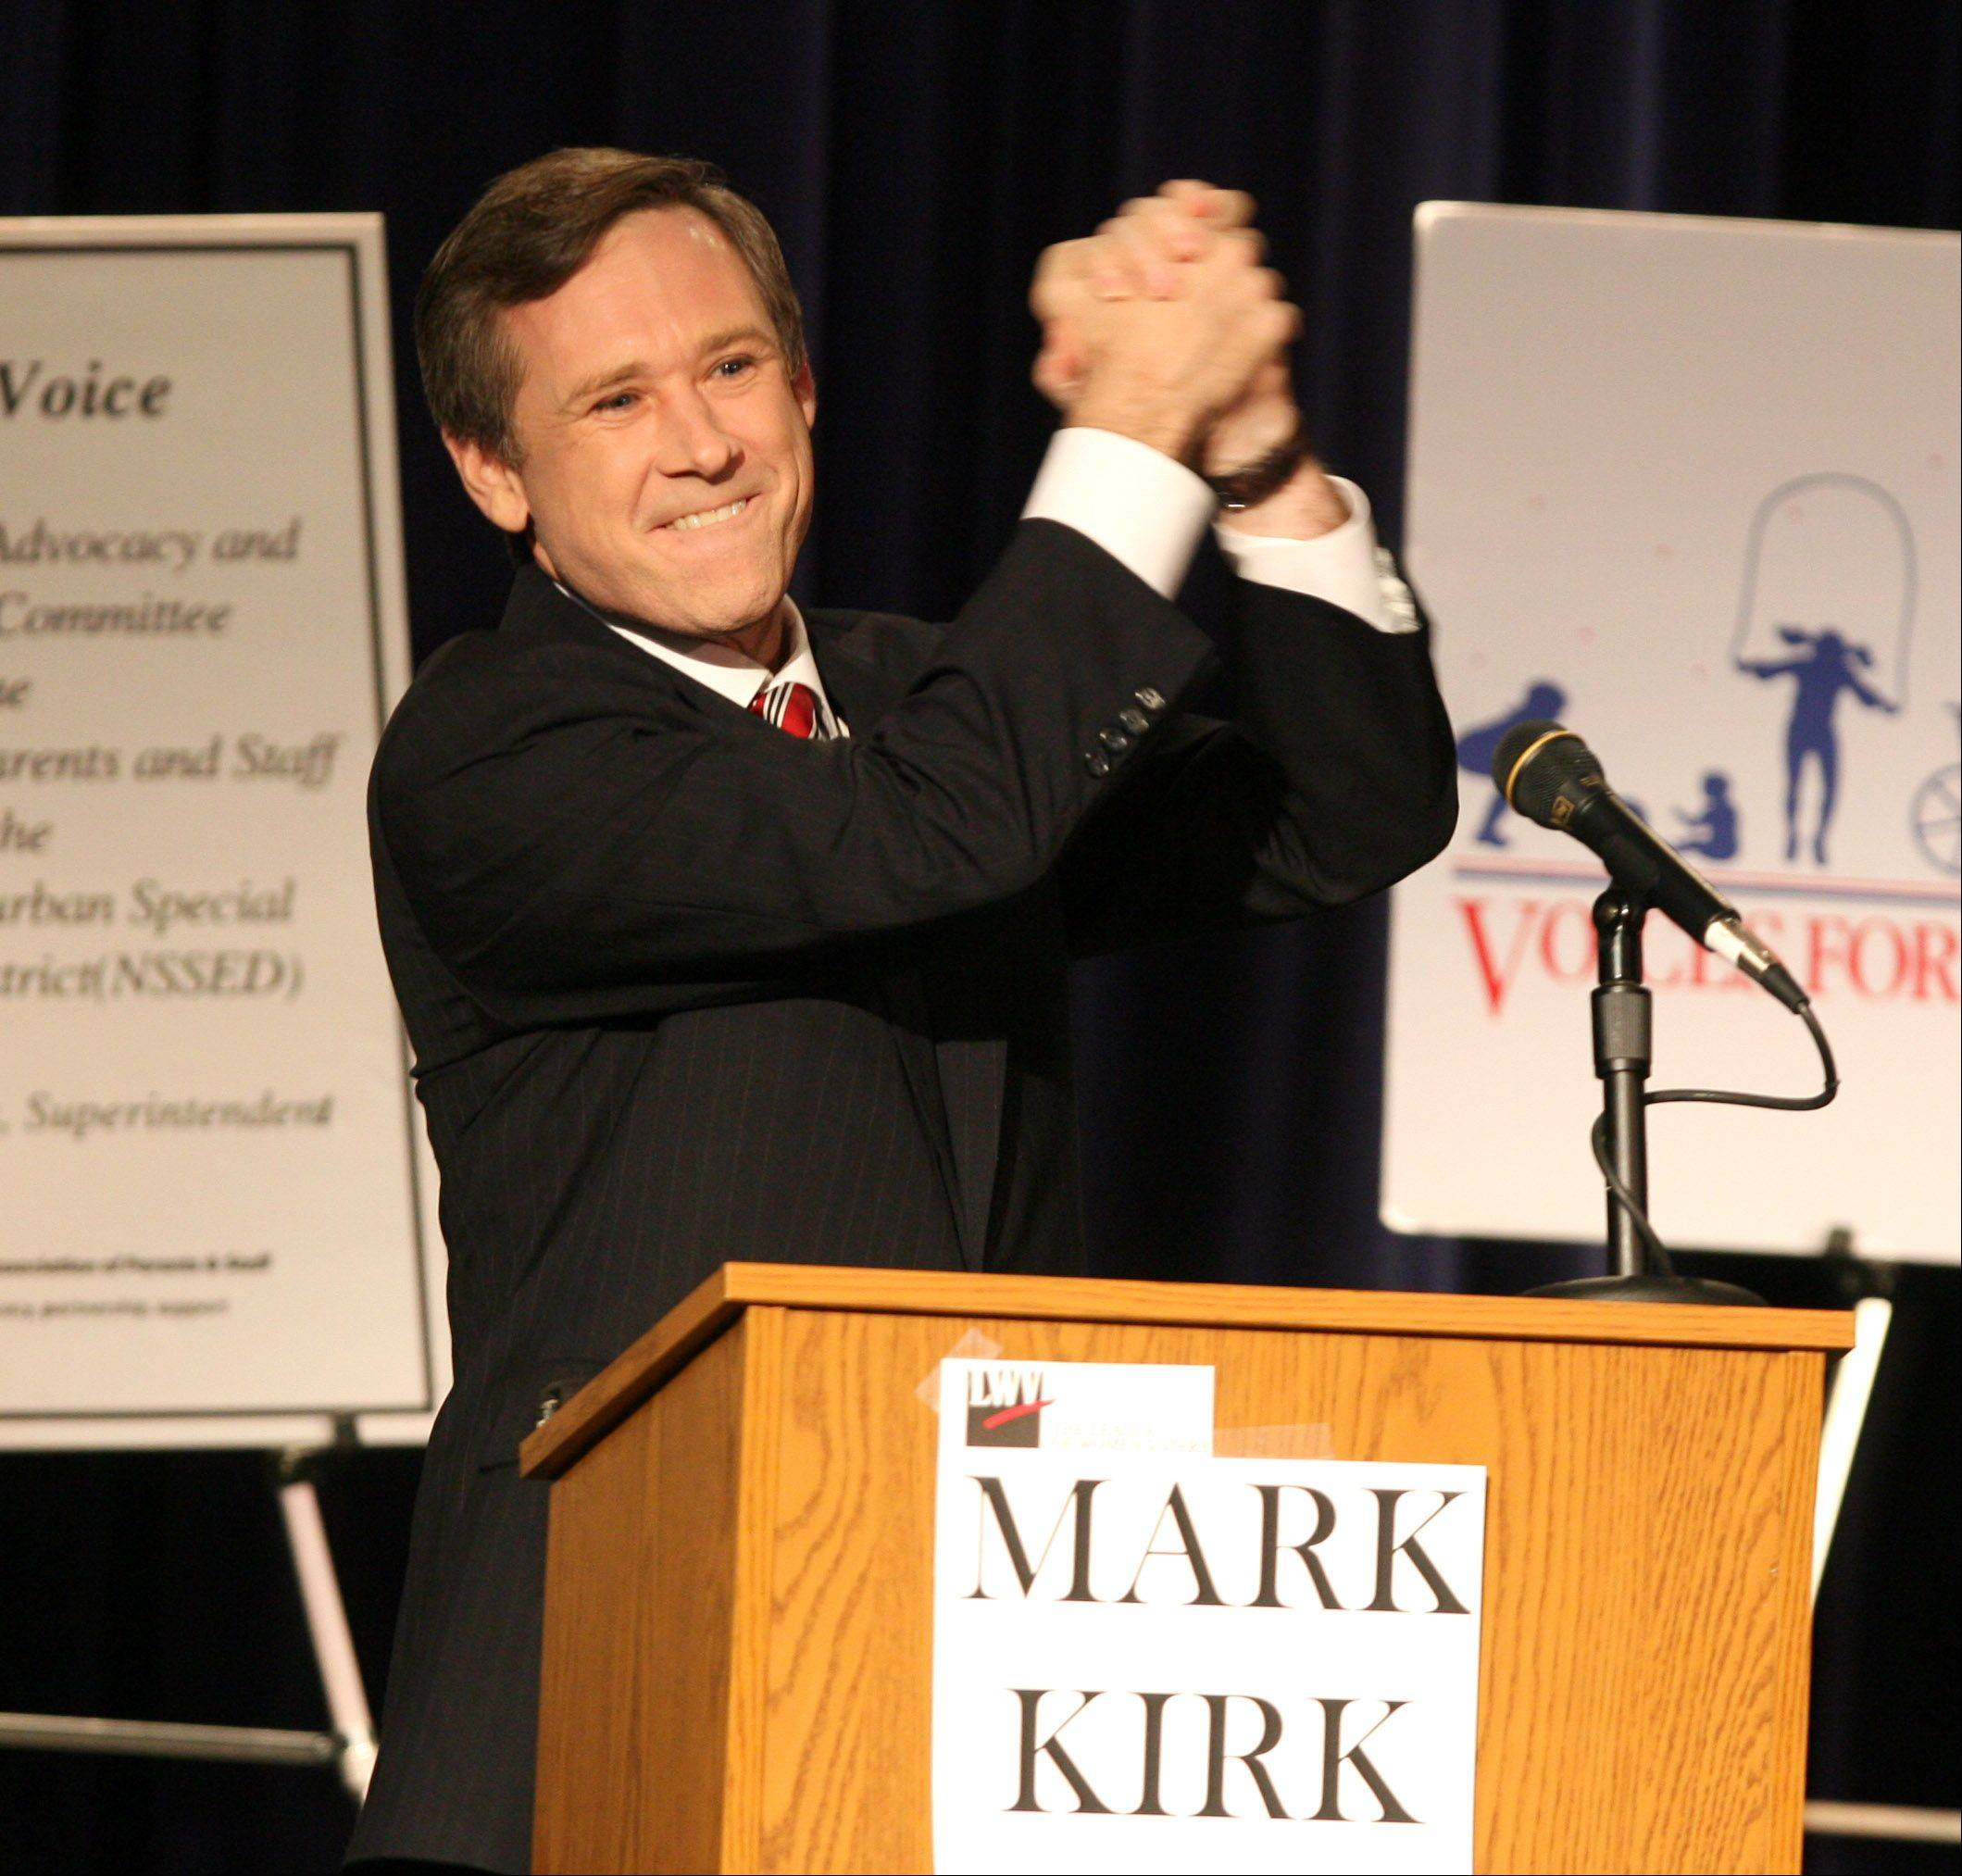 As Kirk recovers, state GOP launches plan he fine-tuned